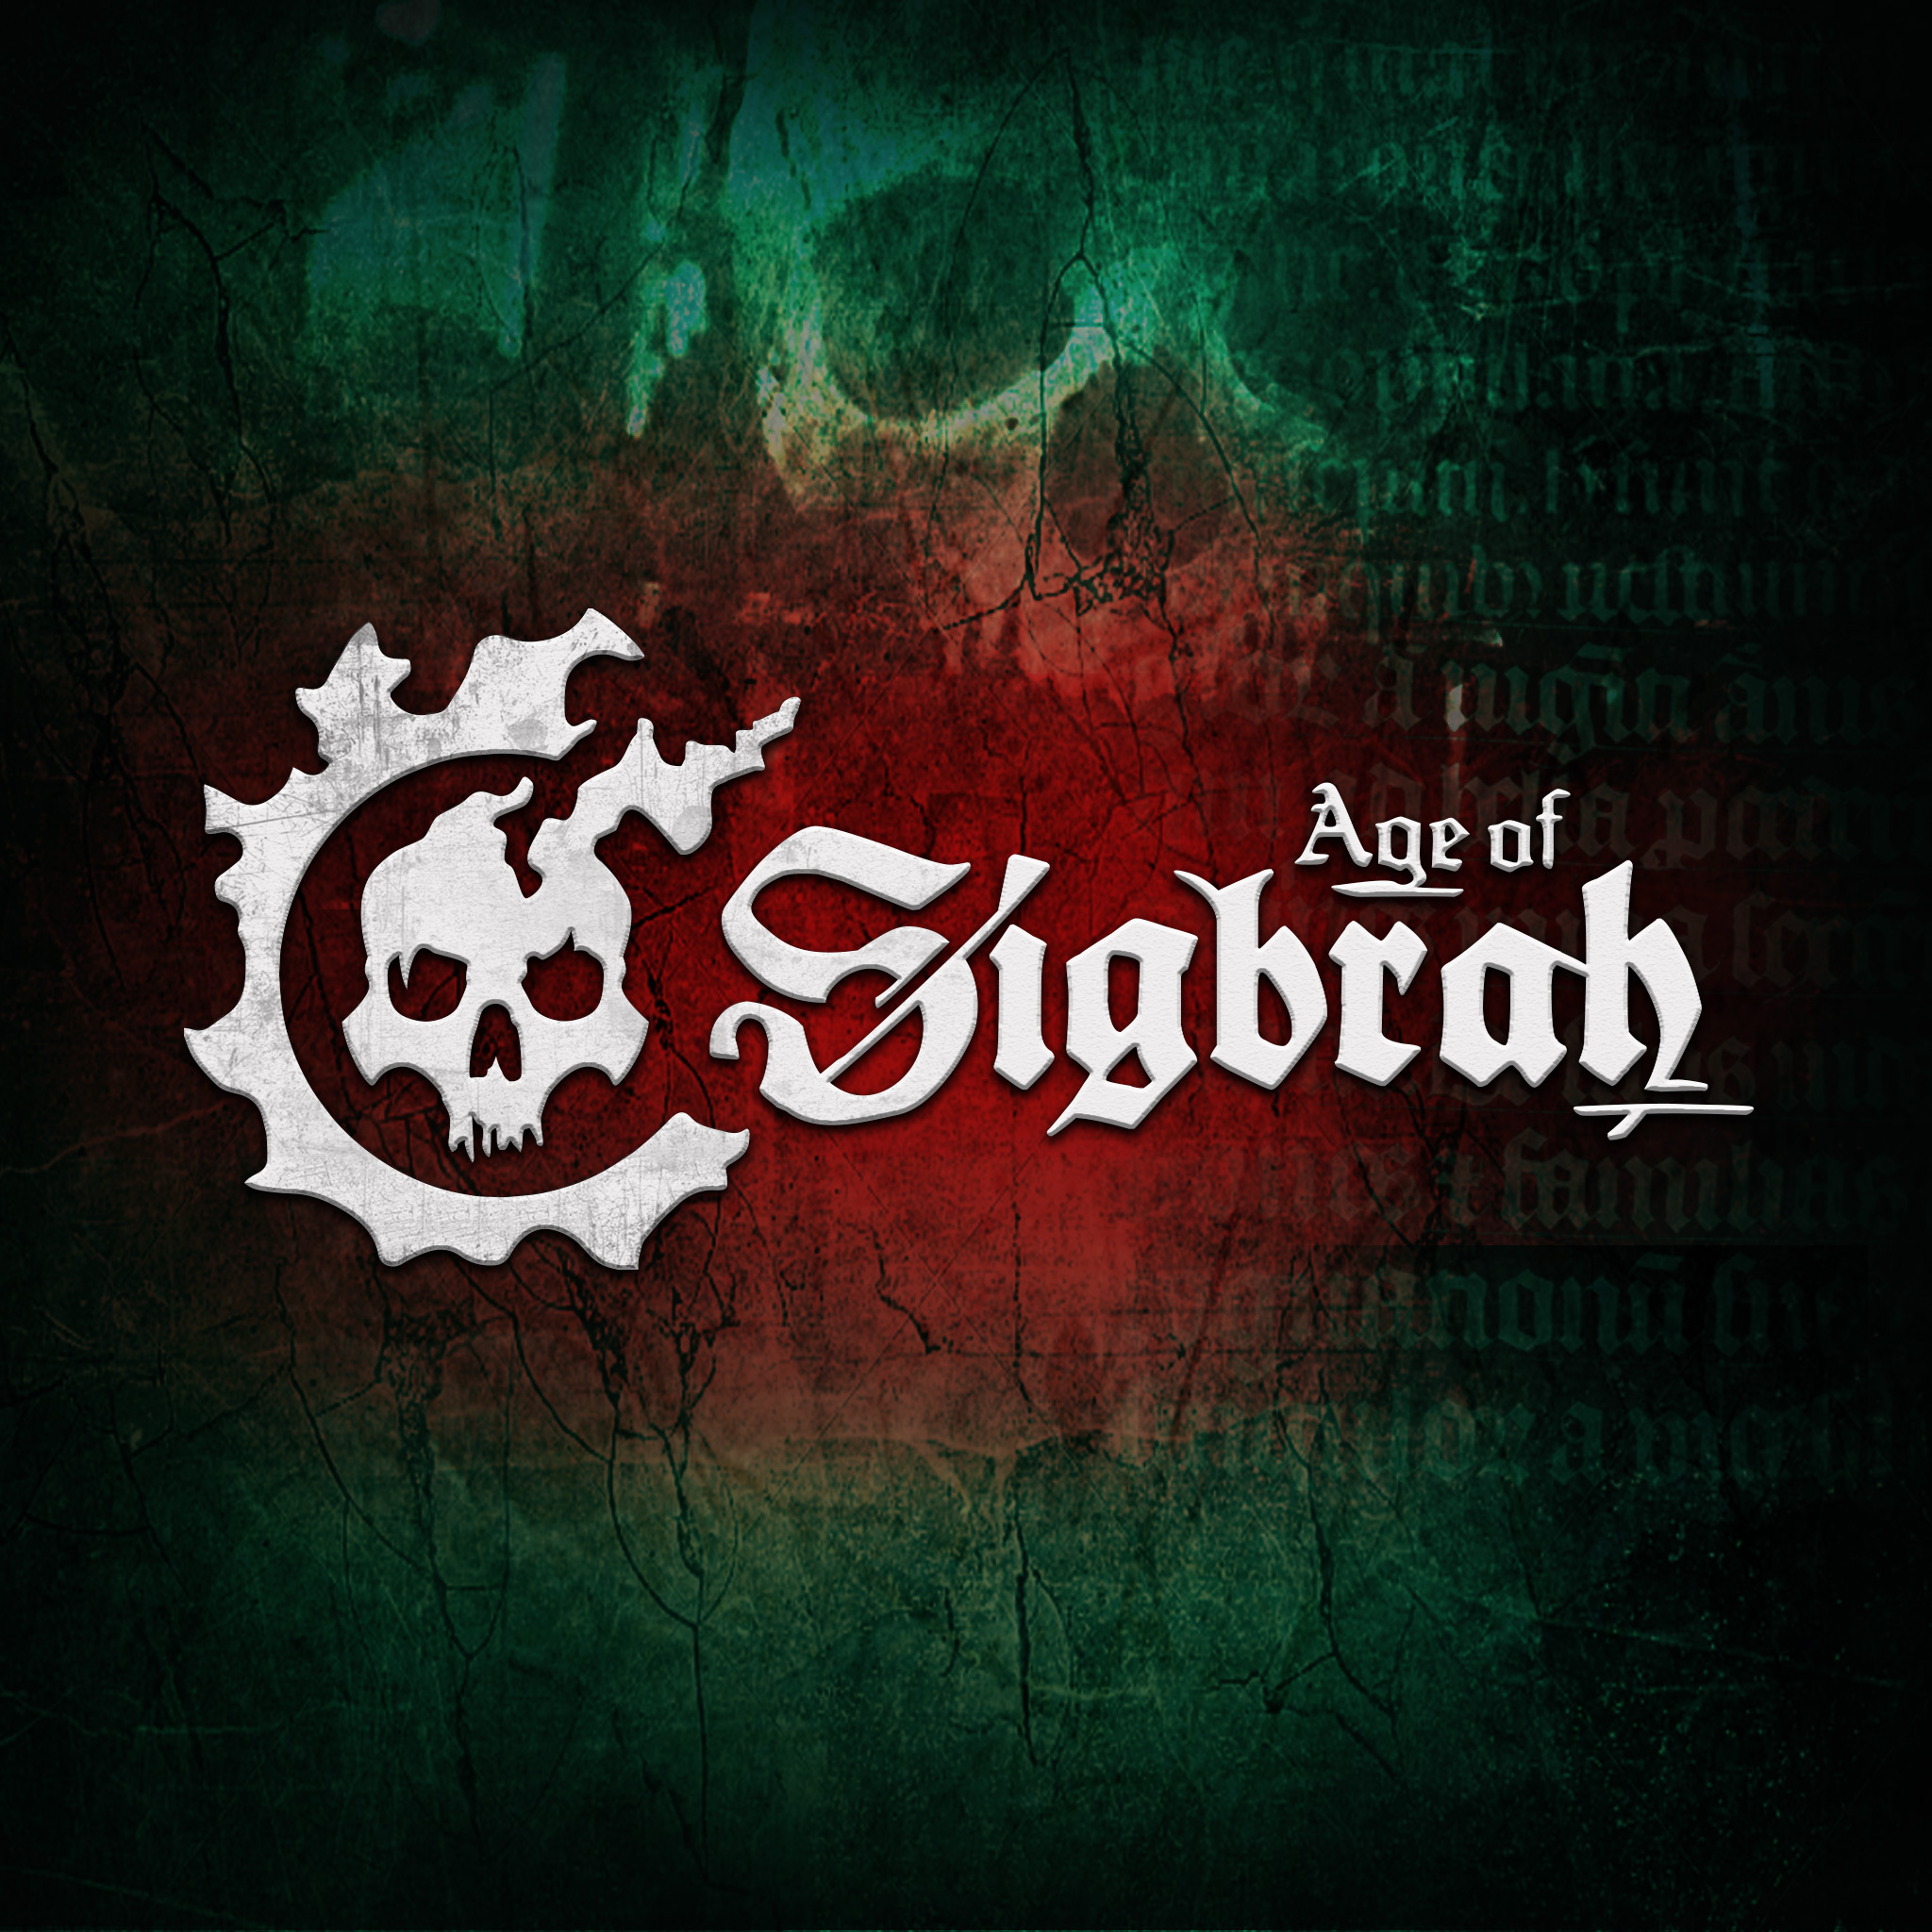 Age of Sigbrah Ep.51: Nagash Can't Let It Go